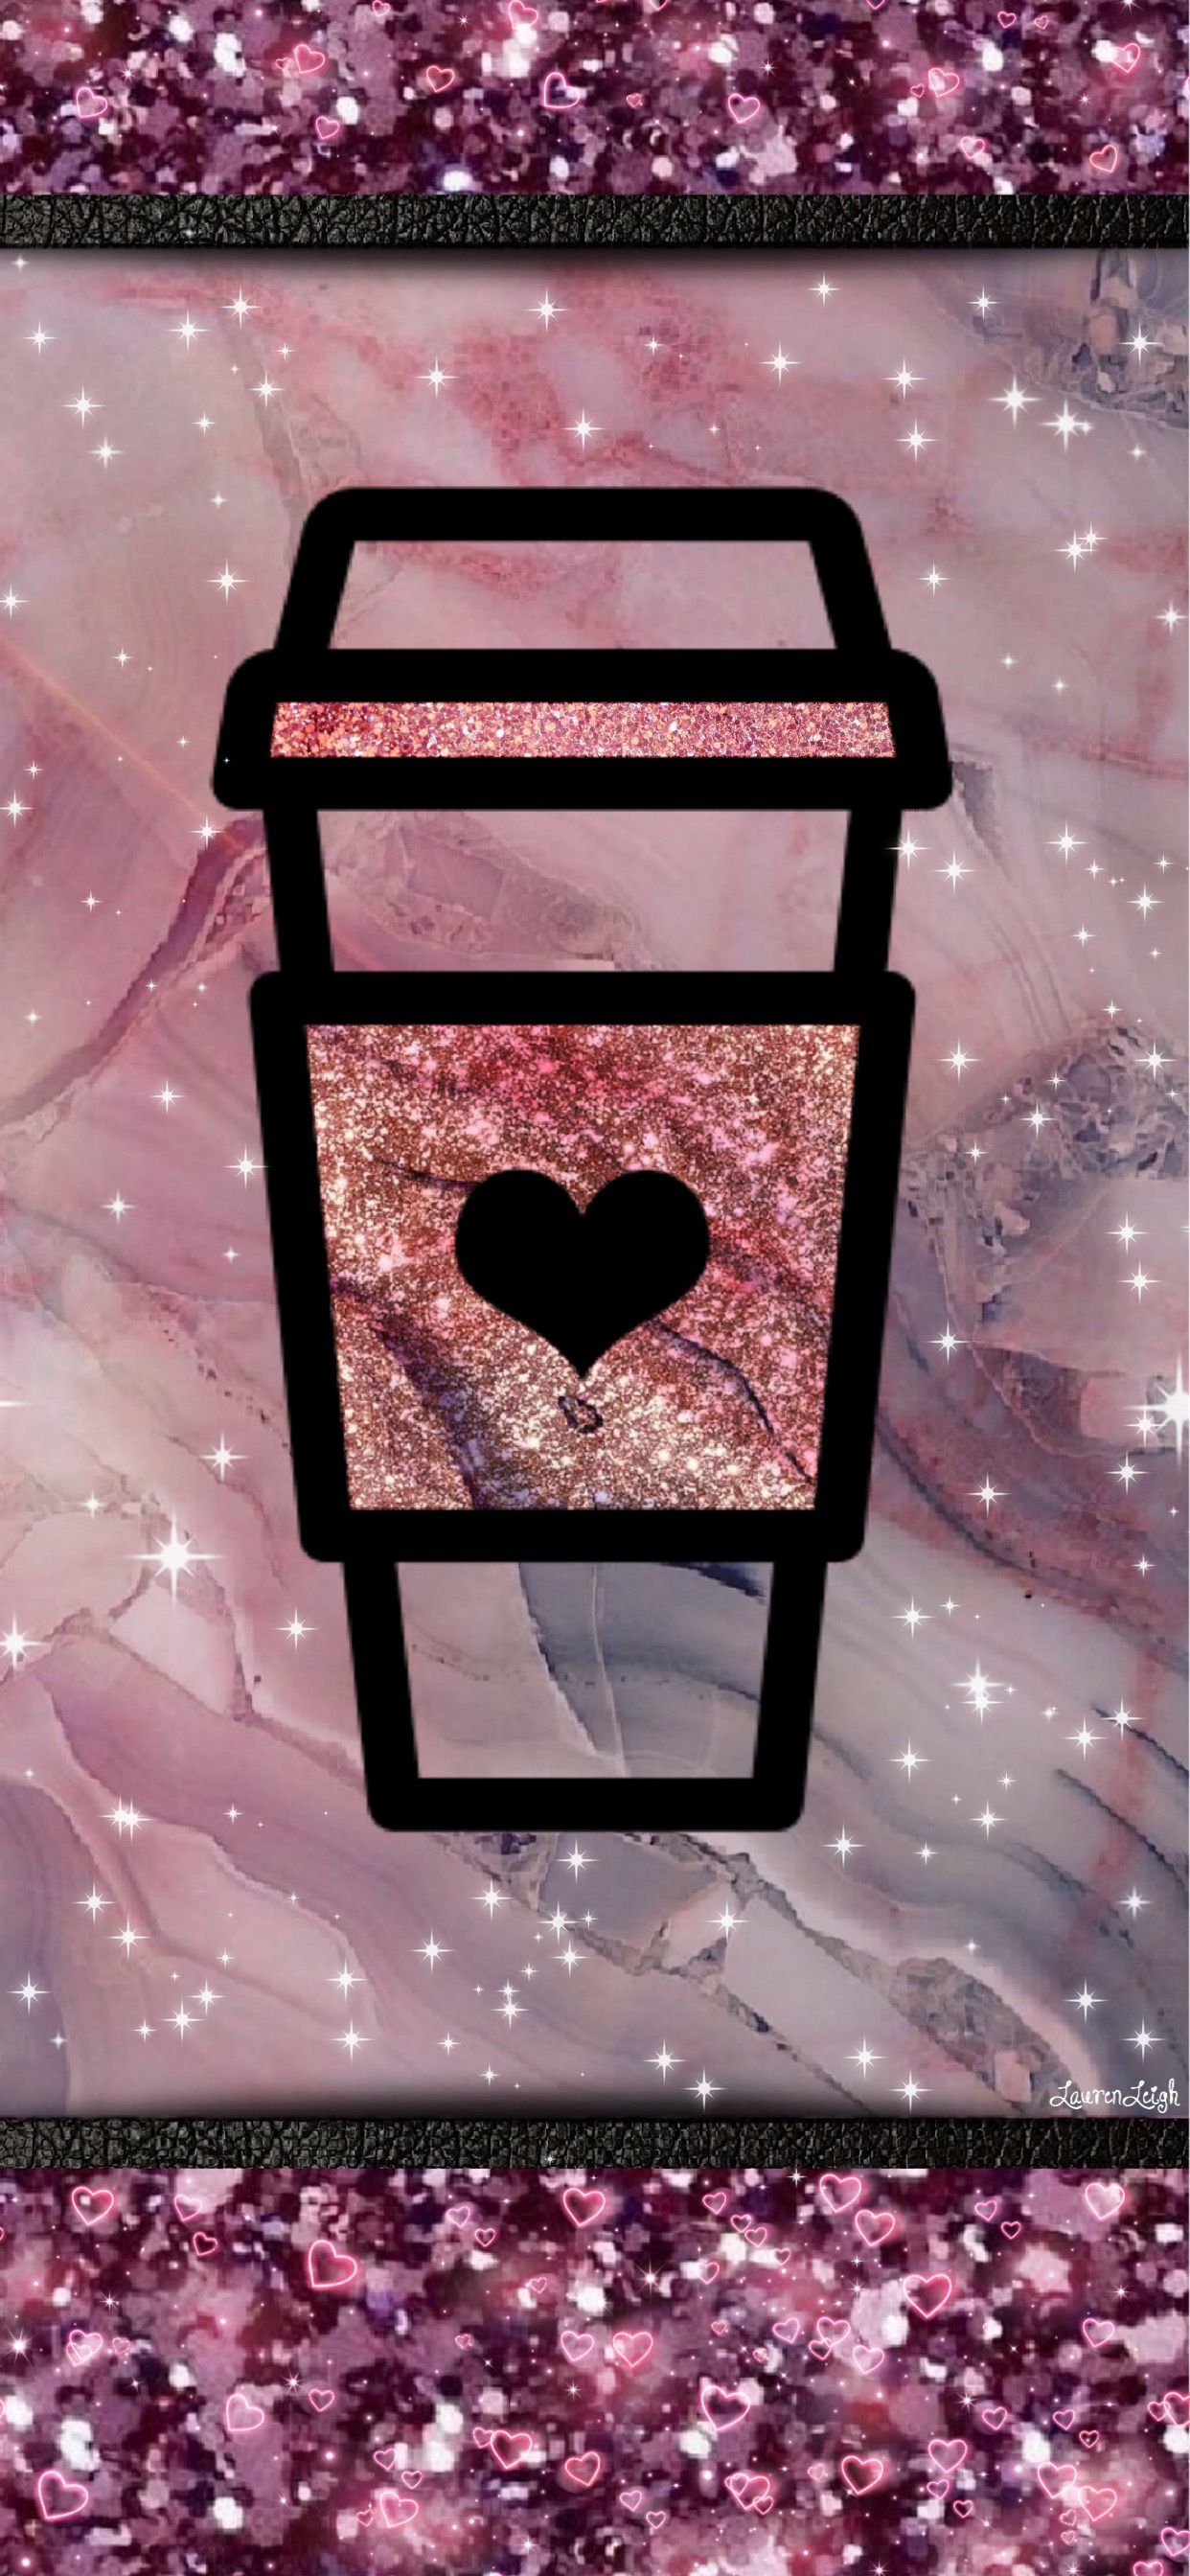 Coffee Cup Starbucks Pink Glitter Hearts Wallpaper